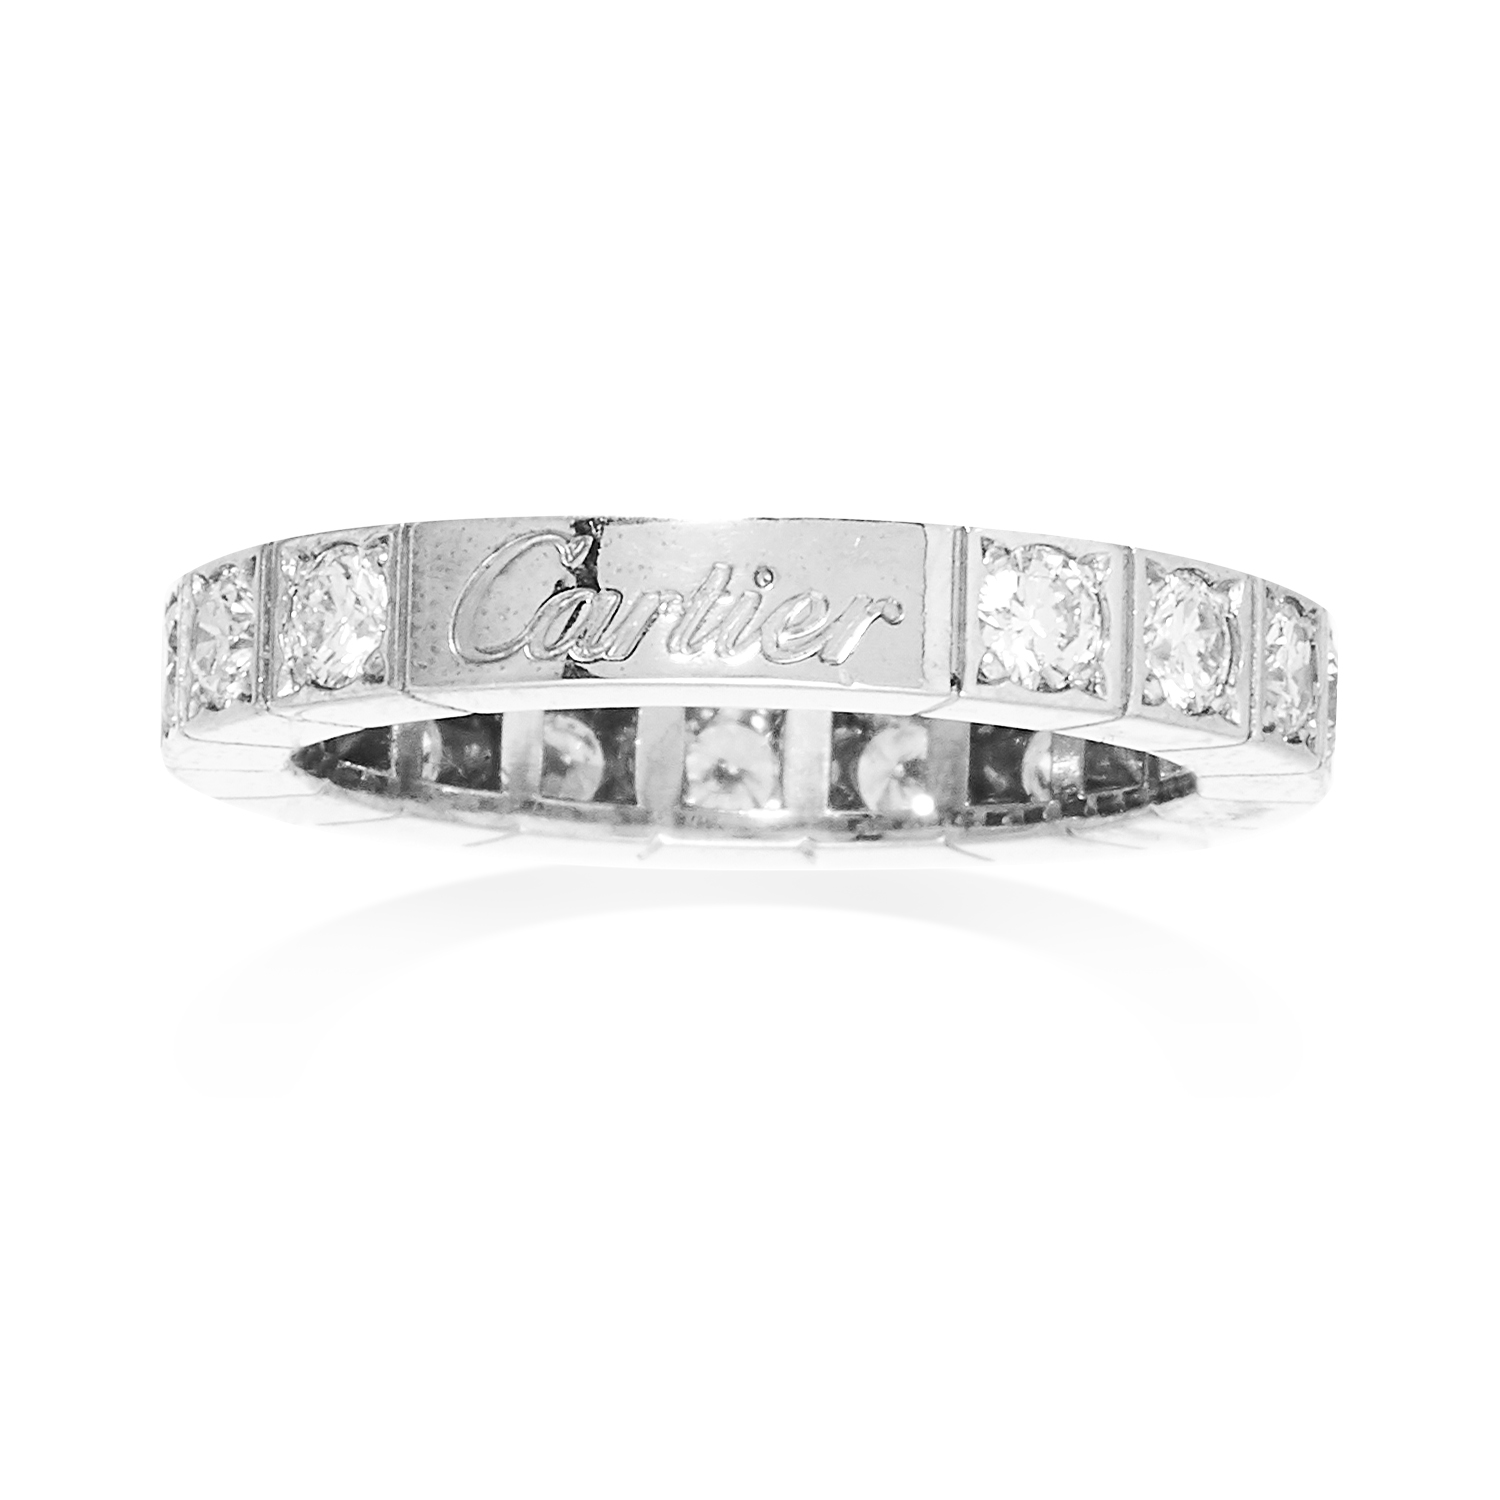 A DIAMOND ETERNITY RING, CARTIER in 18ct white gold, set with a single row of diamonds totalling 1.0 - Bild 2 aus 2